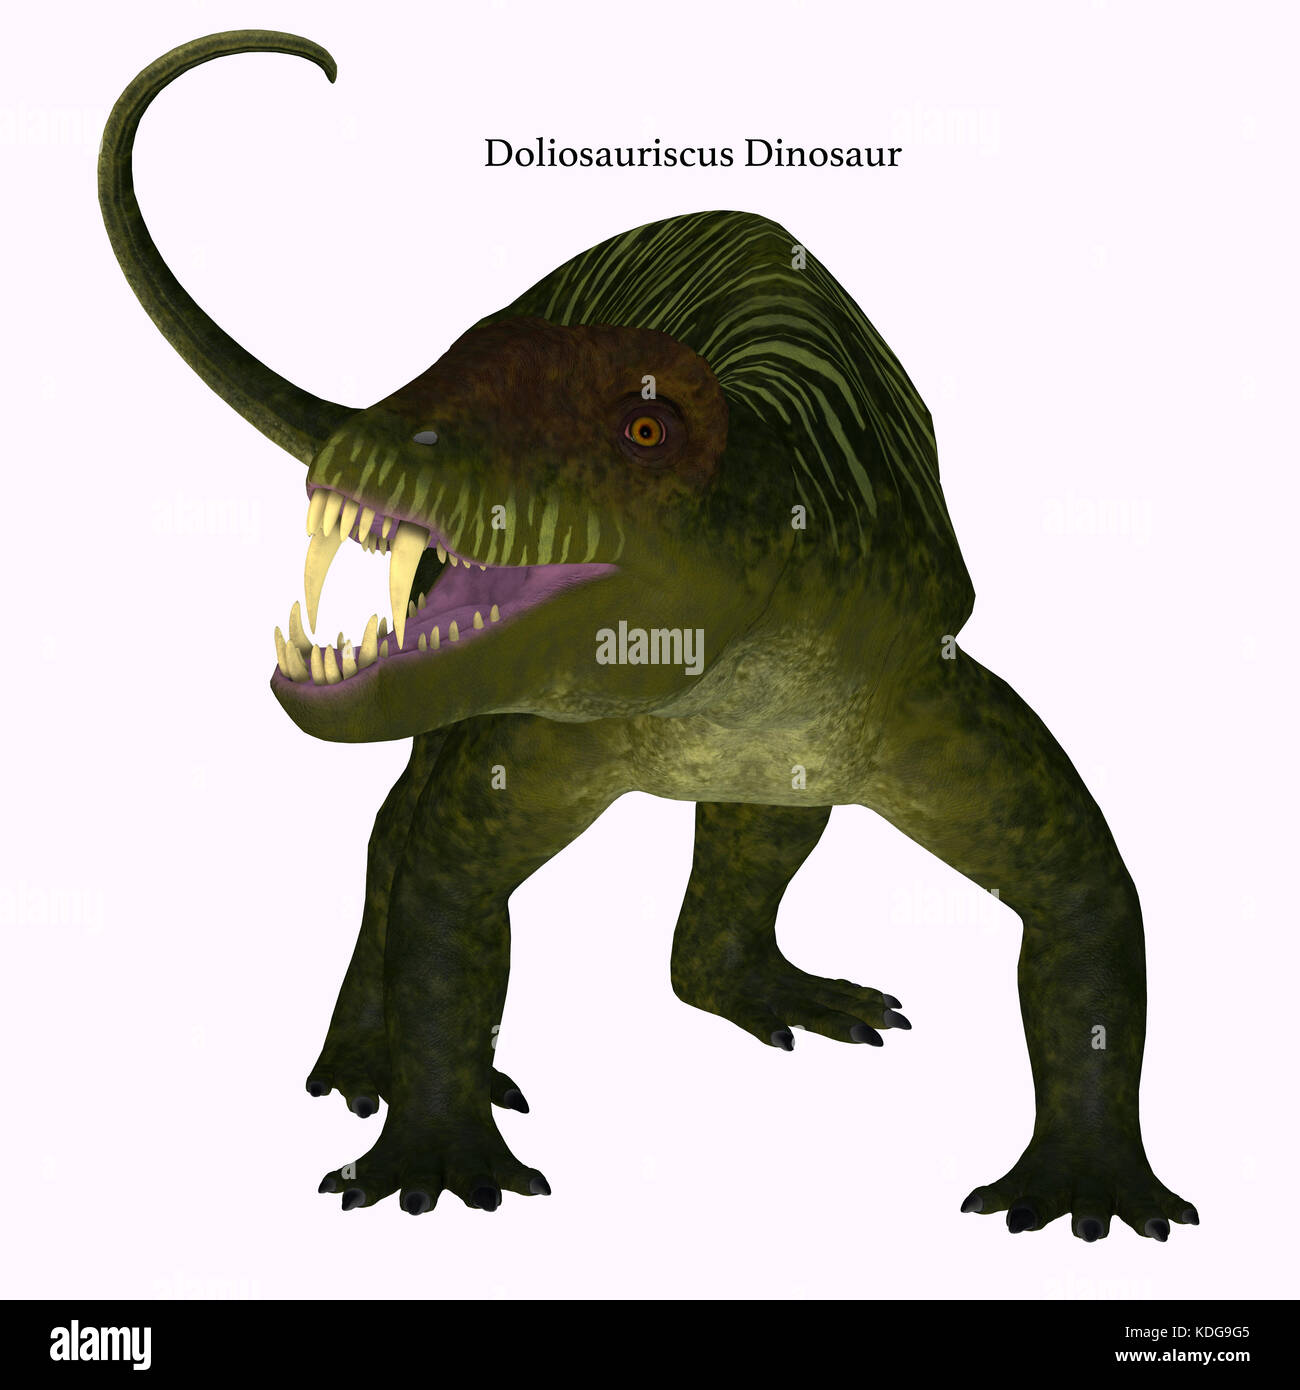 Doliosauriscus Dinosaur on White - Doliosauriscus is an extinct genus of therapsid carnivorous dinosaur that lived - Stock Image